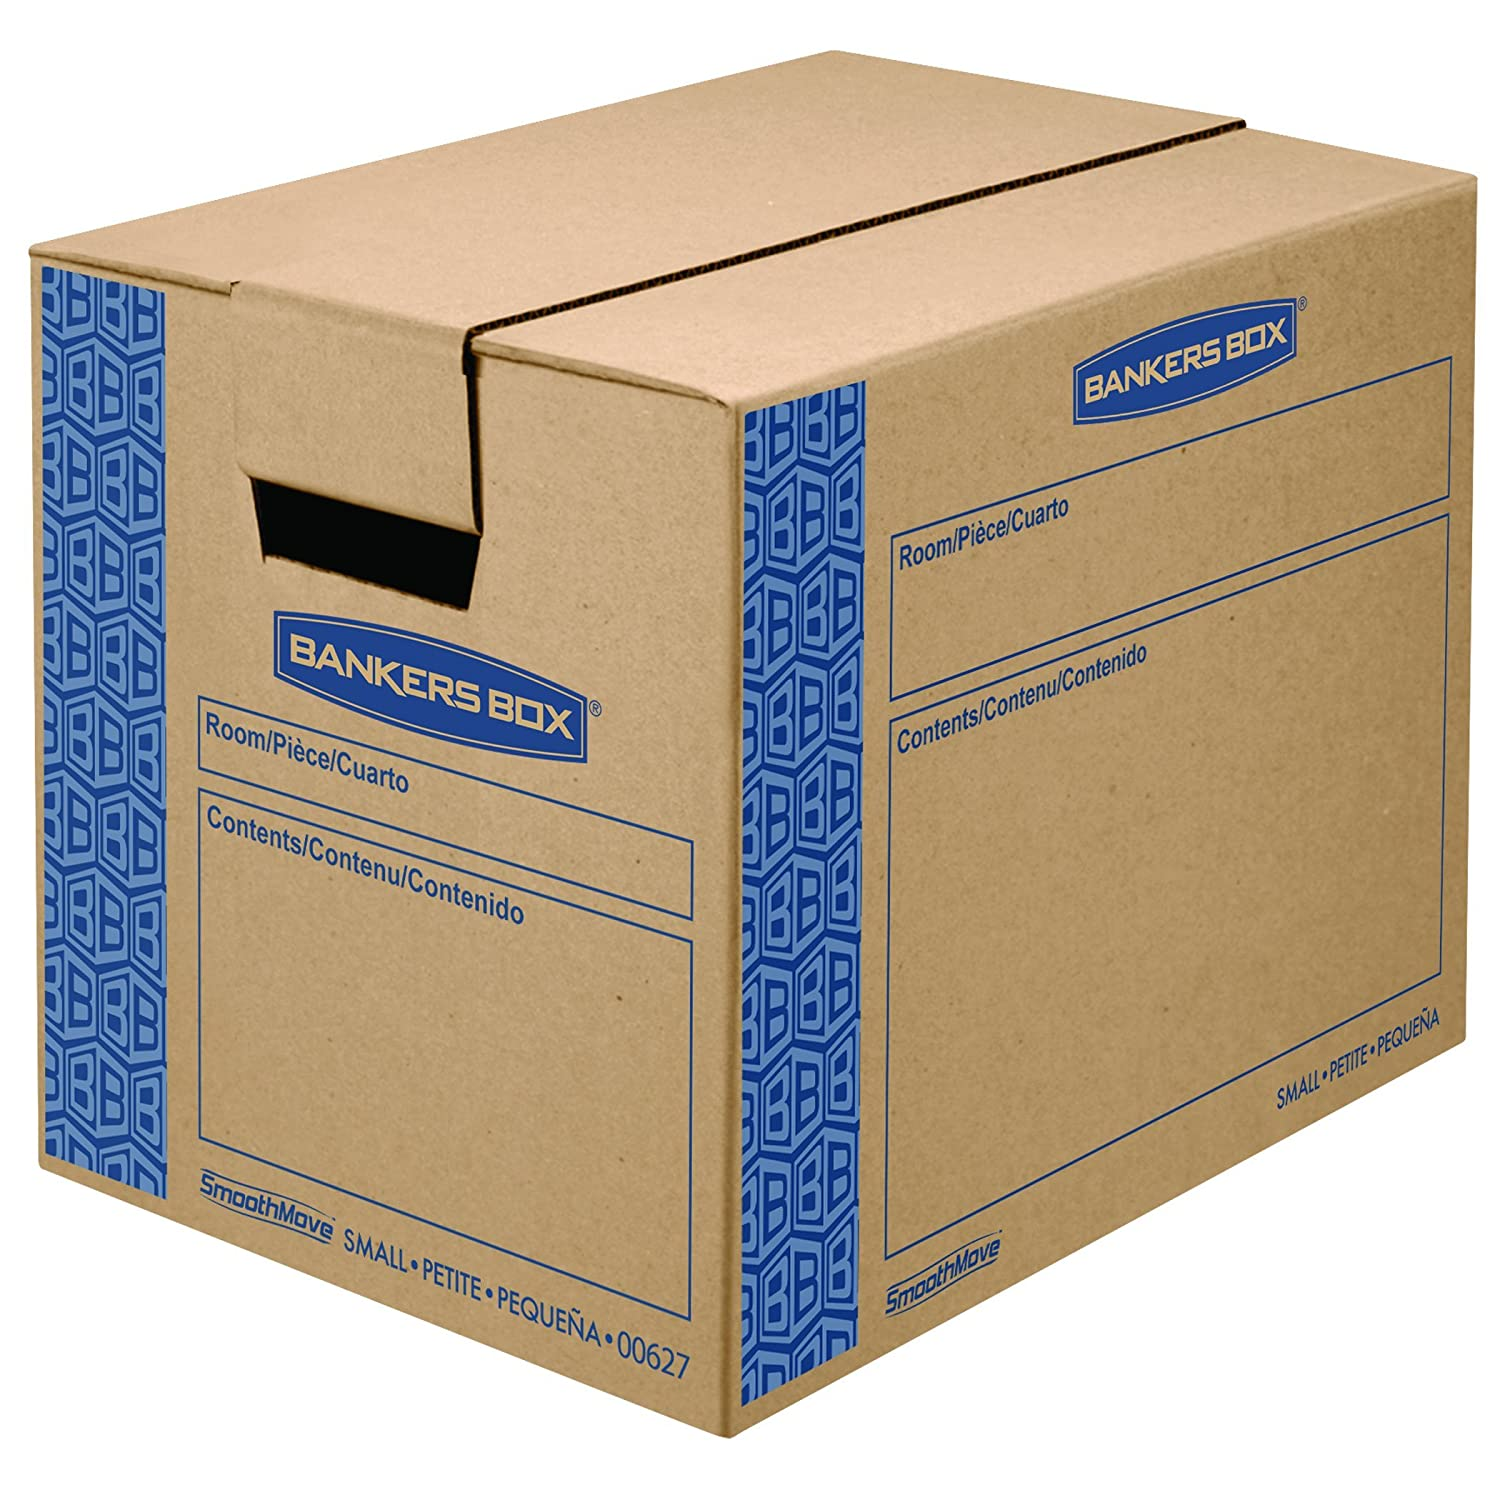 Bankers Box SmoothMove Prime Moving Boxes, Tape-Free, FastFold Easy Assembly, Handles, Reusable, Small, 16 x 12 x 12 Inches, 10 Pack (0062701) Fellowes Office Supplies